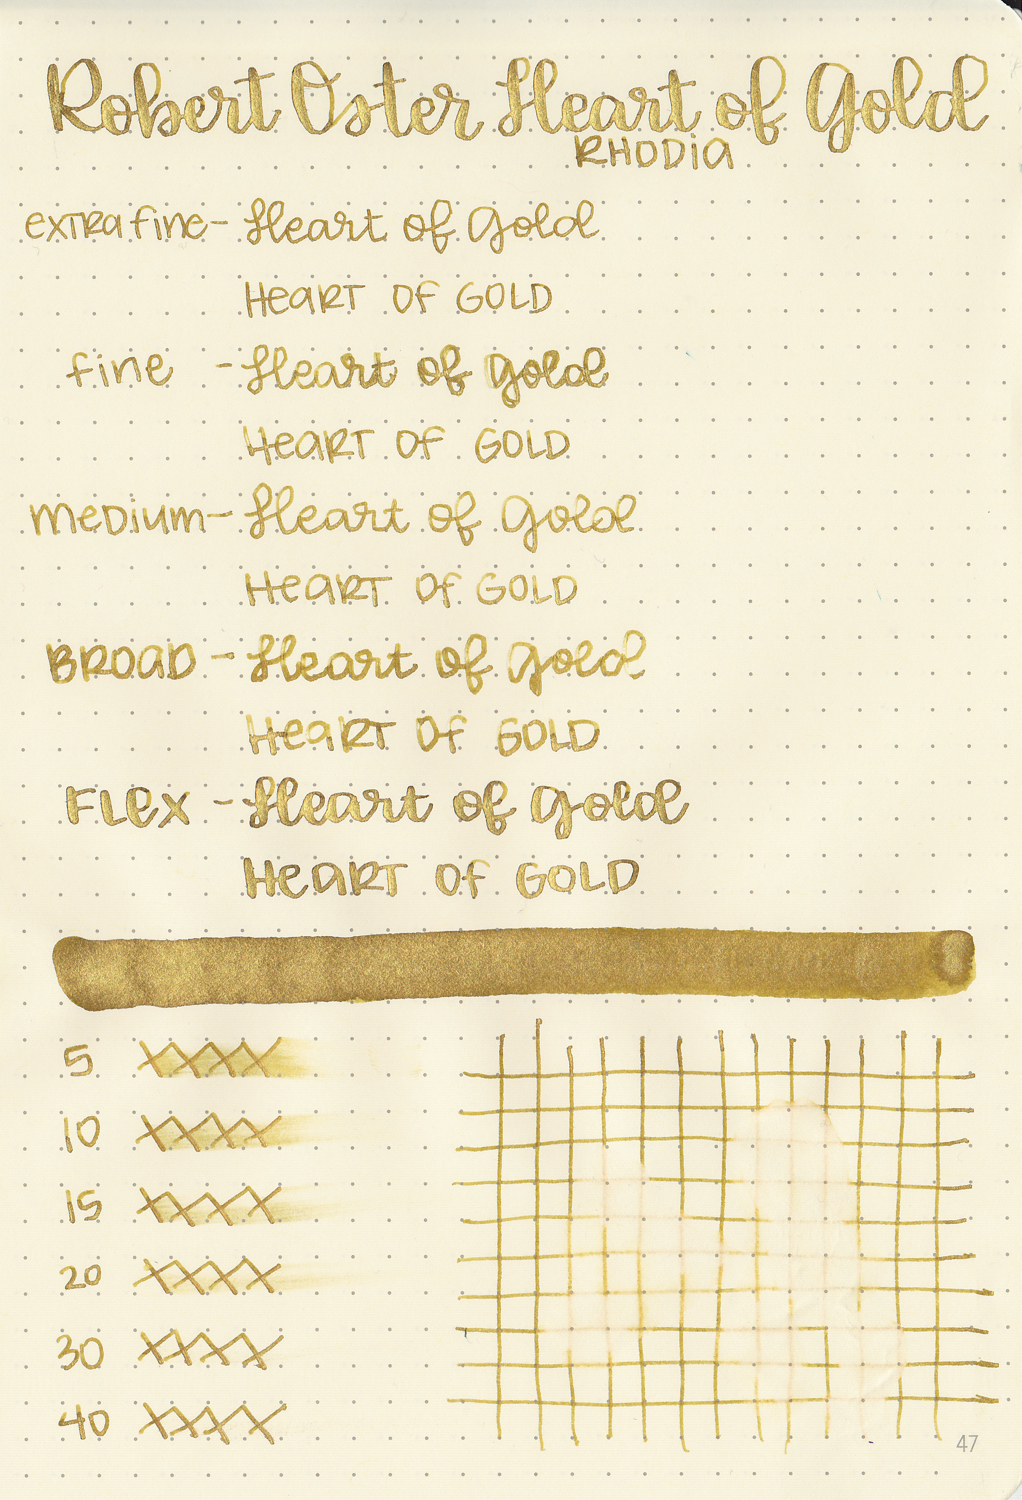 ro-heart-of-gold-4.jpg